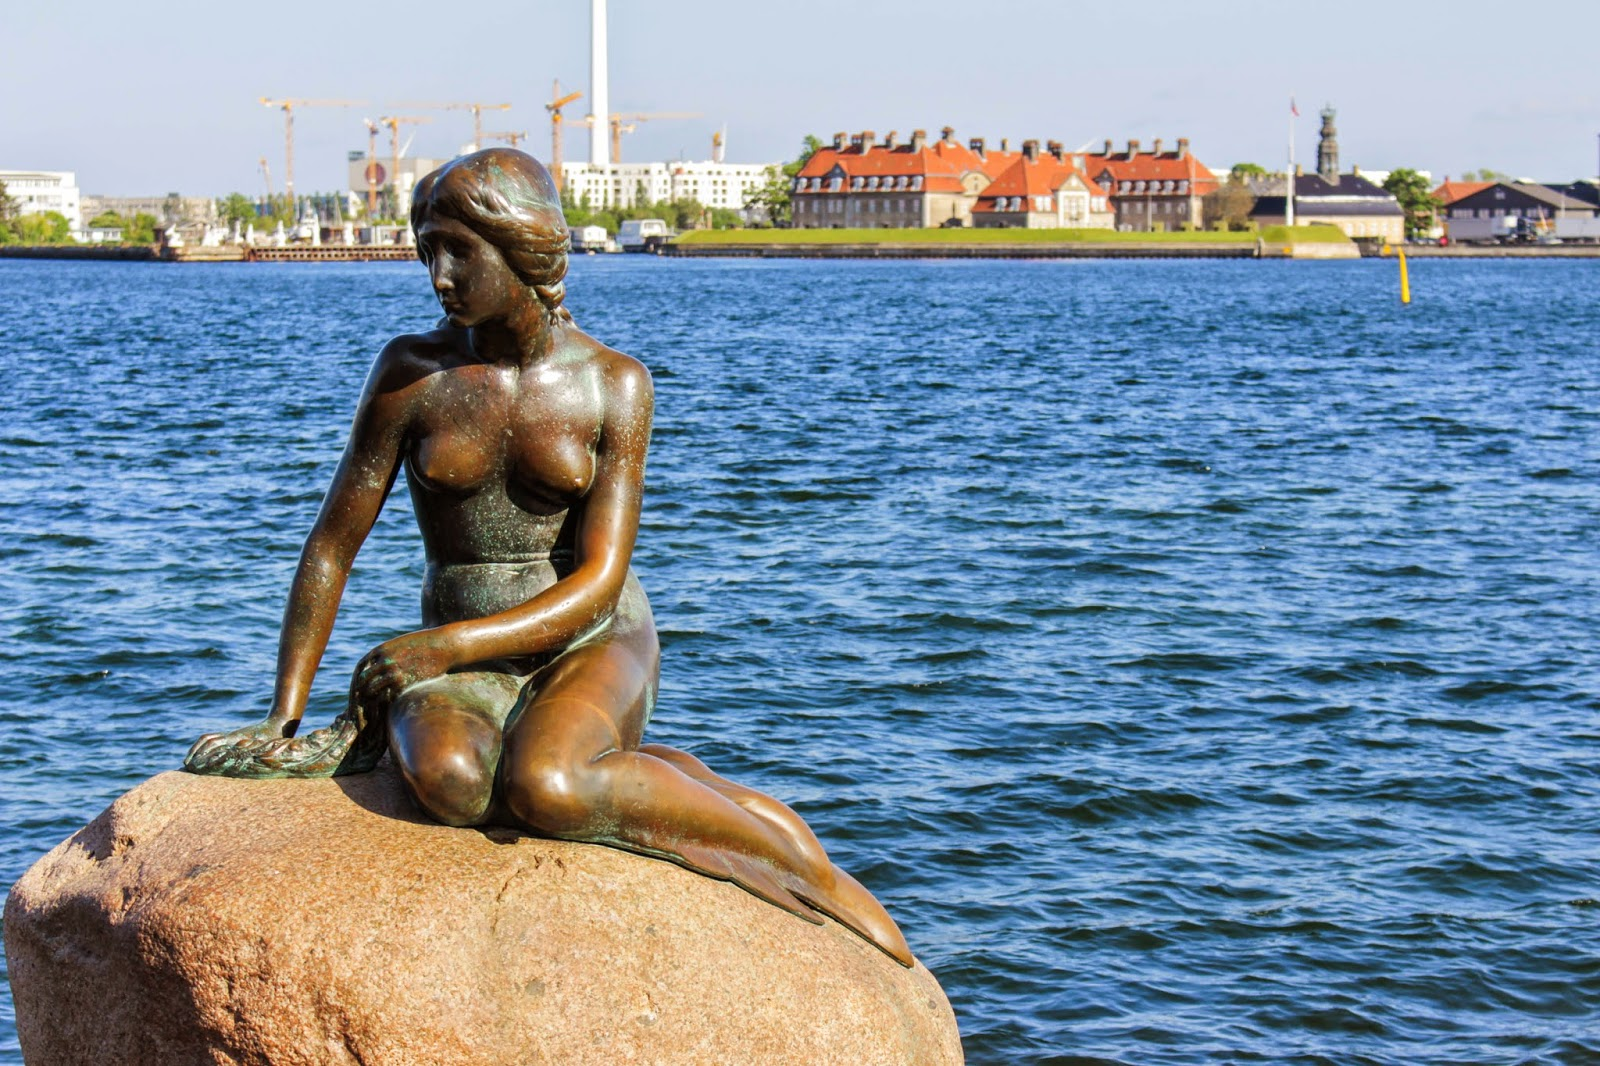 copenhagen-the-little-mermaid